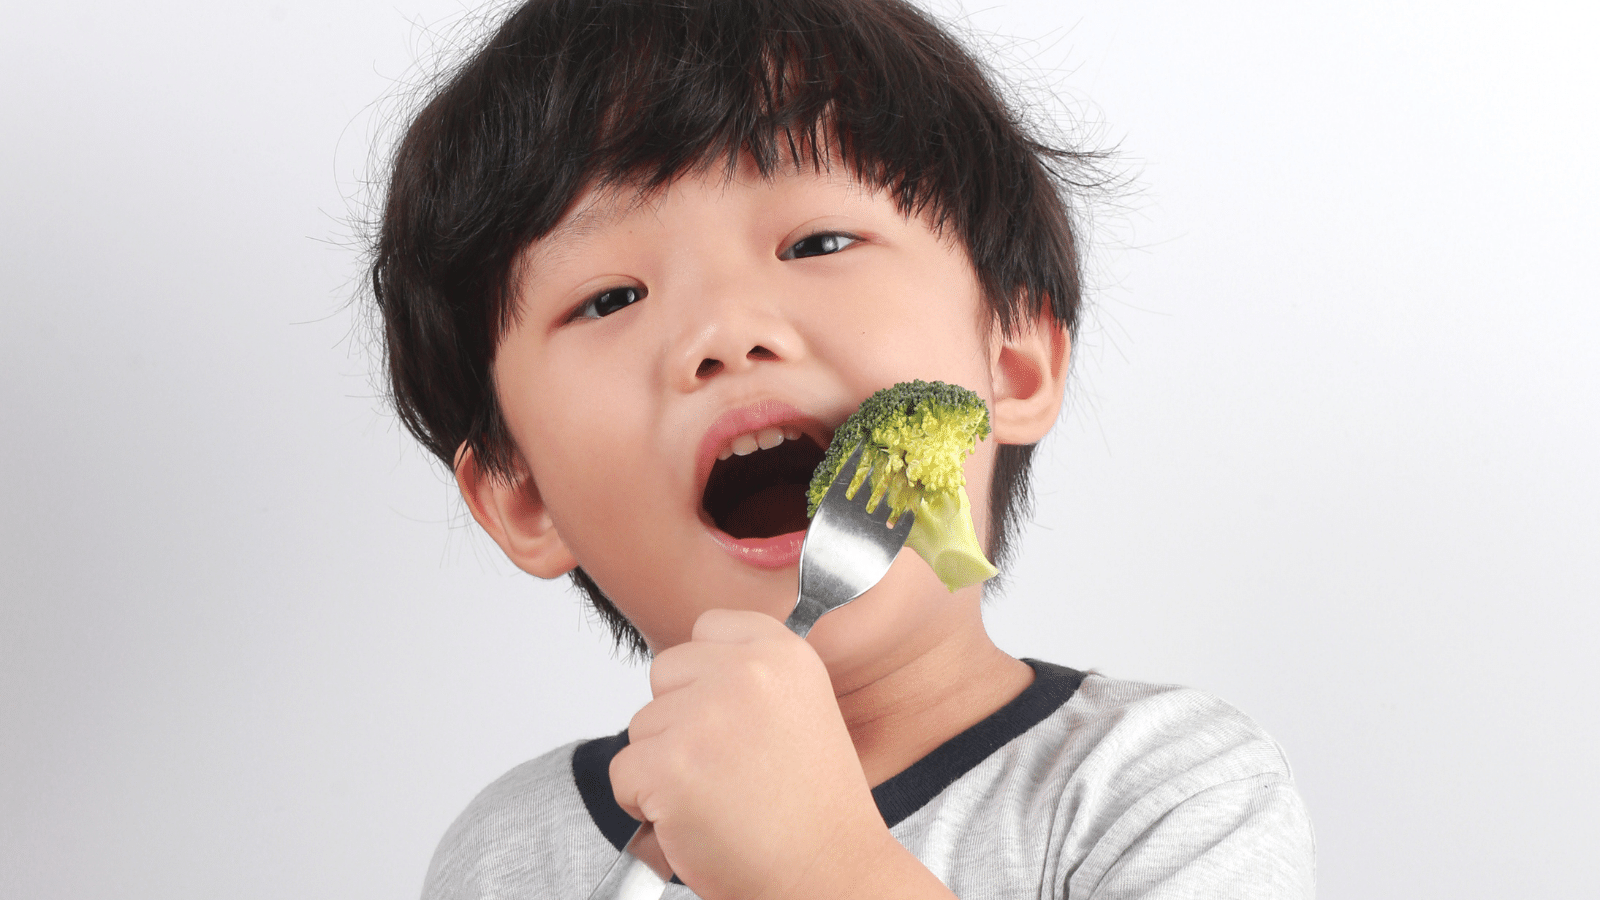 Tips for fussy eaters, how to broaden their horizons